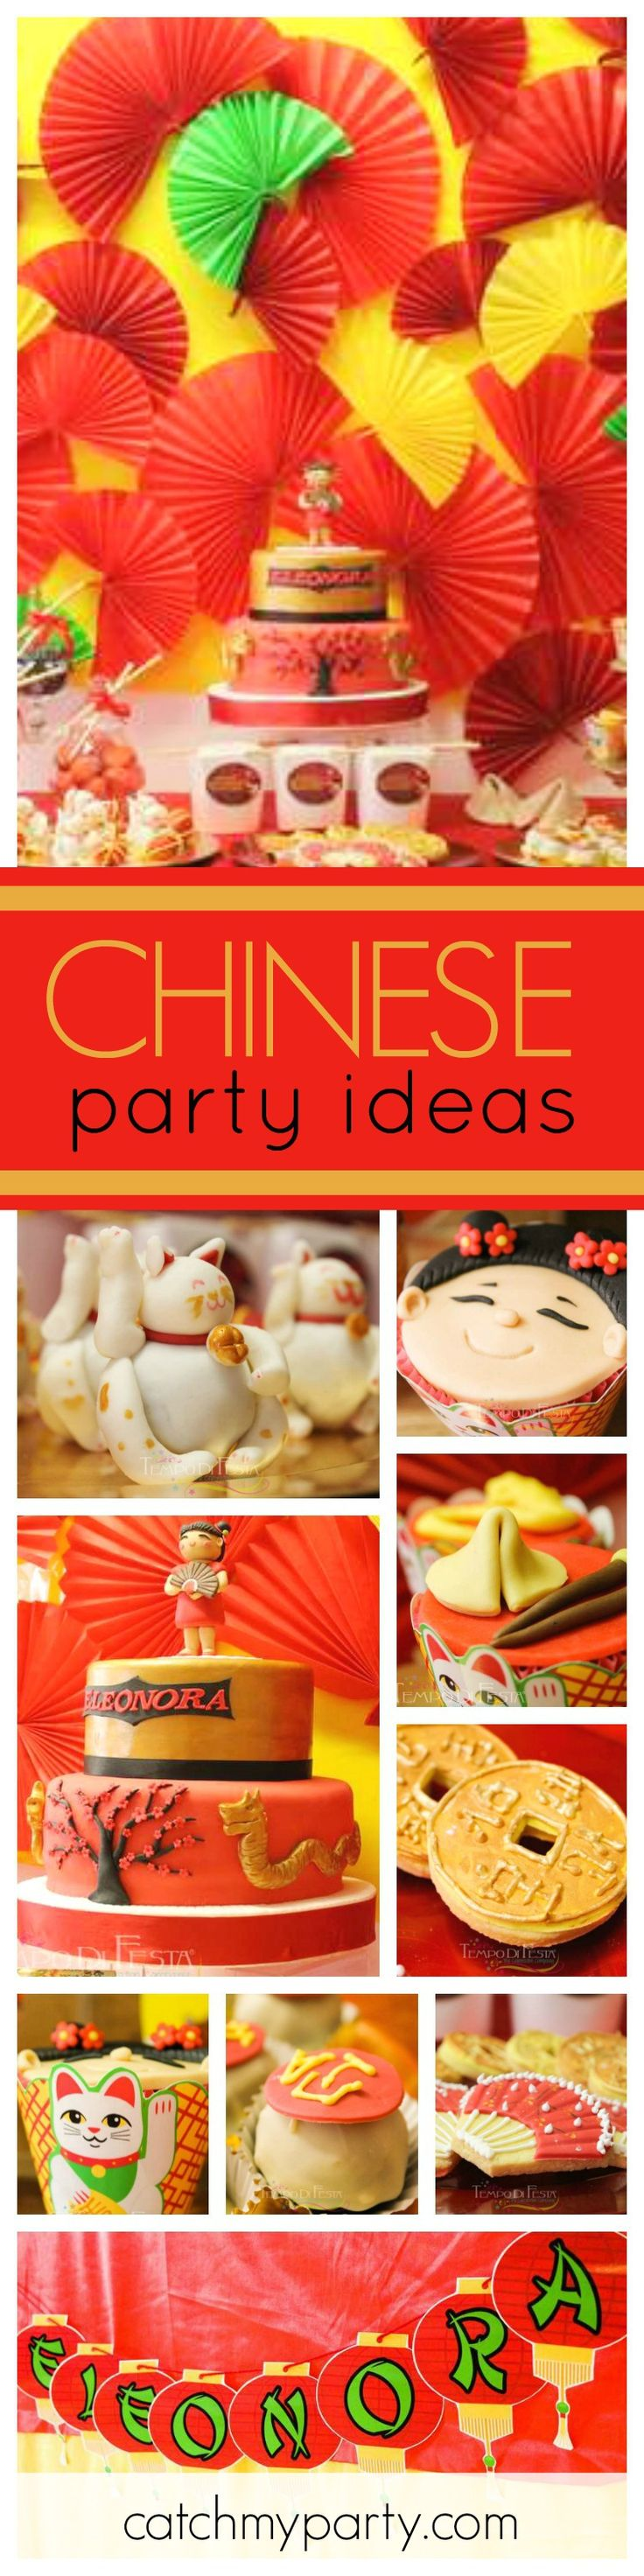 Calendar Party Ideas : Best images about kung fu panda classroom ideas on